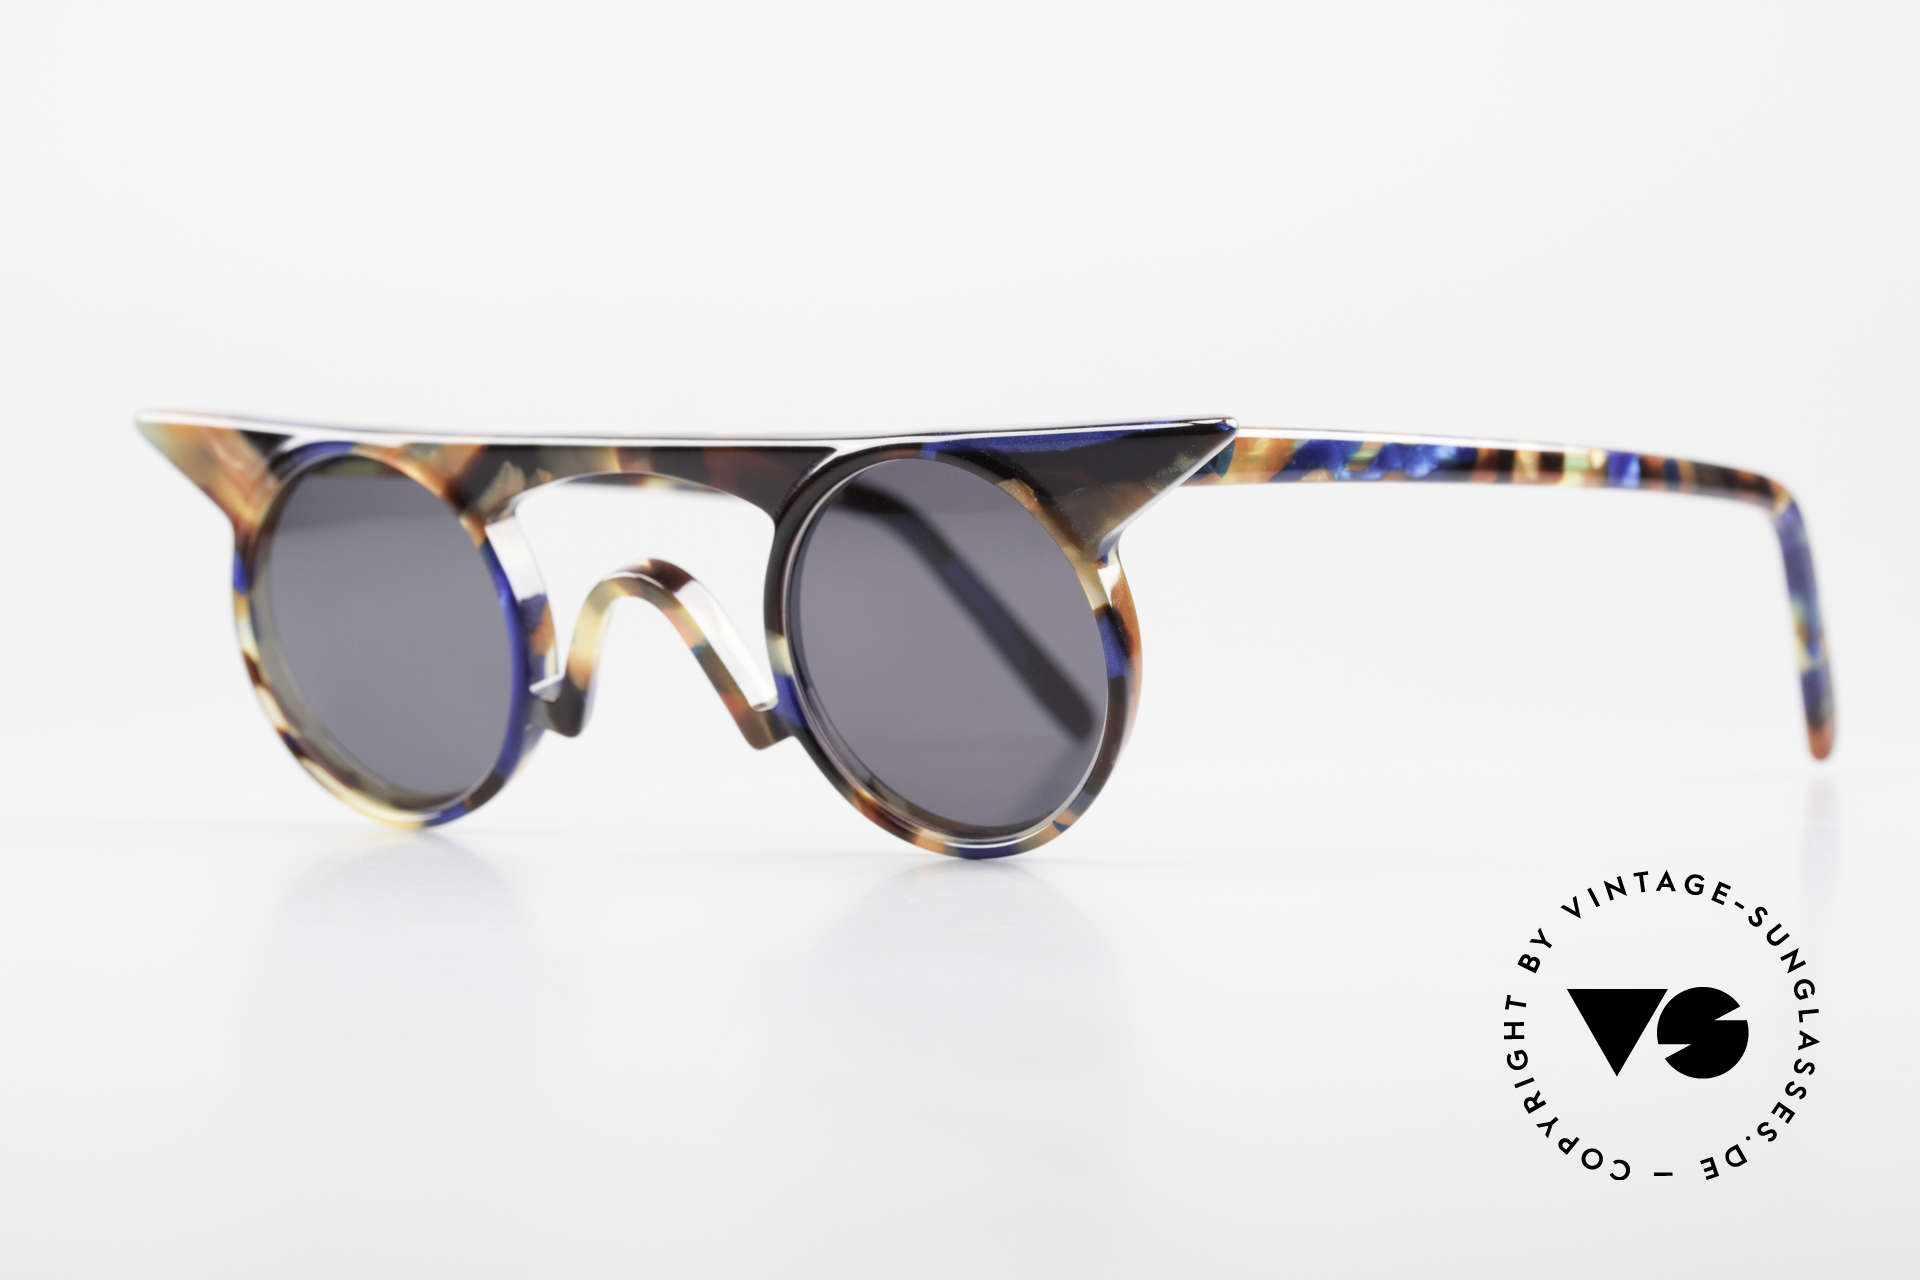 Design Maske Berlin Jason Artful Vintage Sunglasses 90s, functional and EYE-CATCHING, at the same time, Made for Women